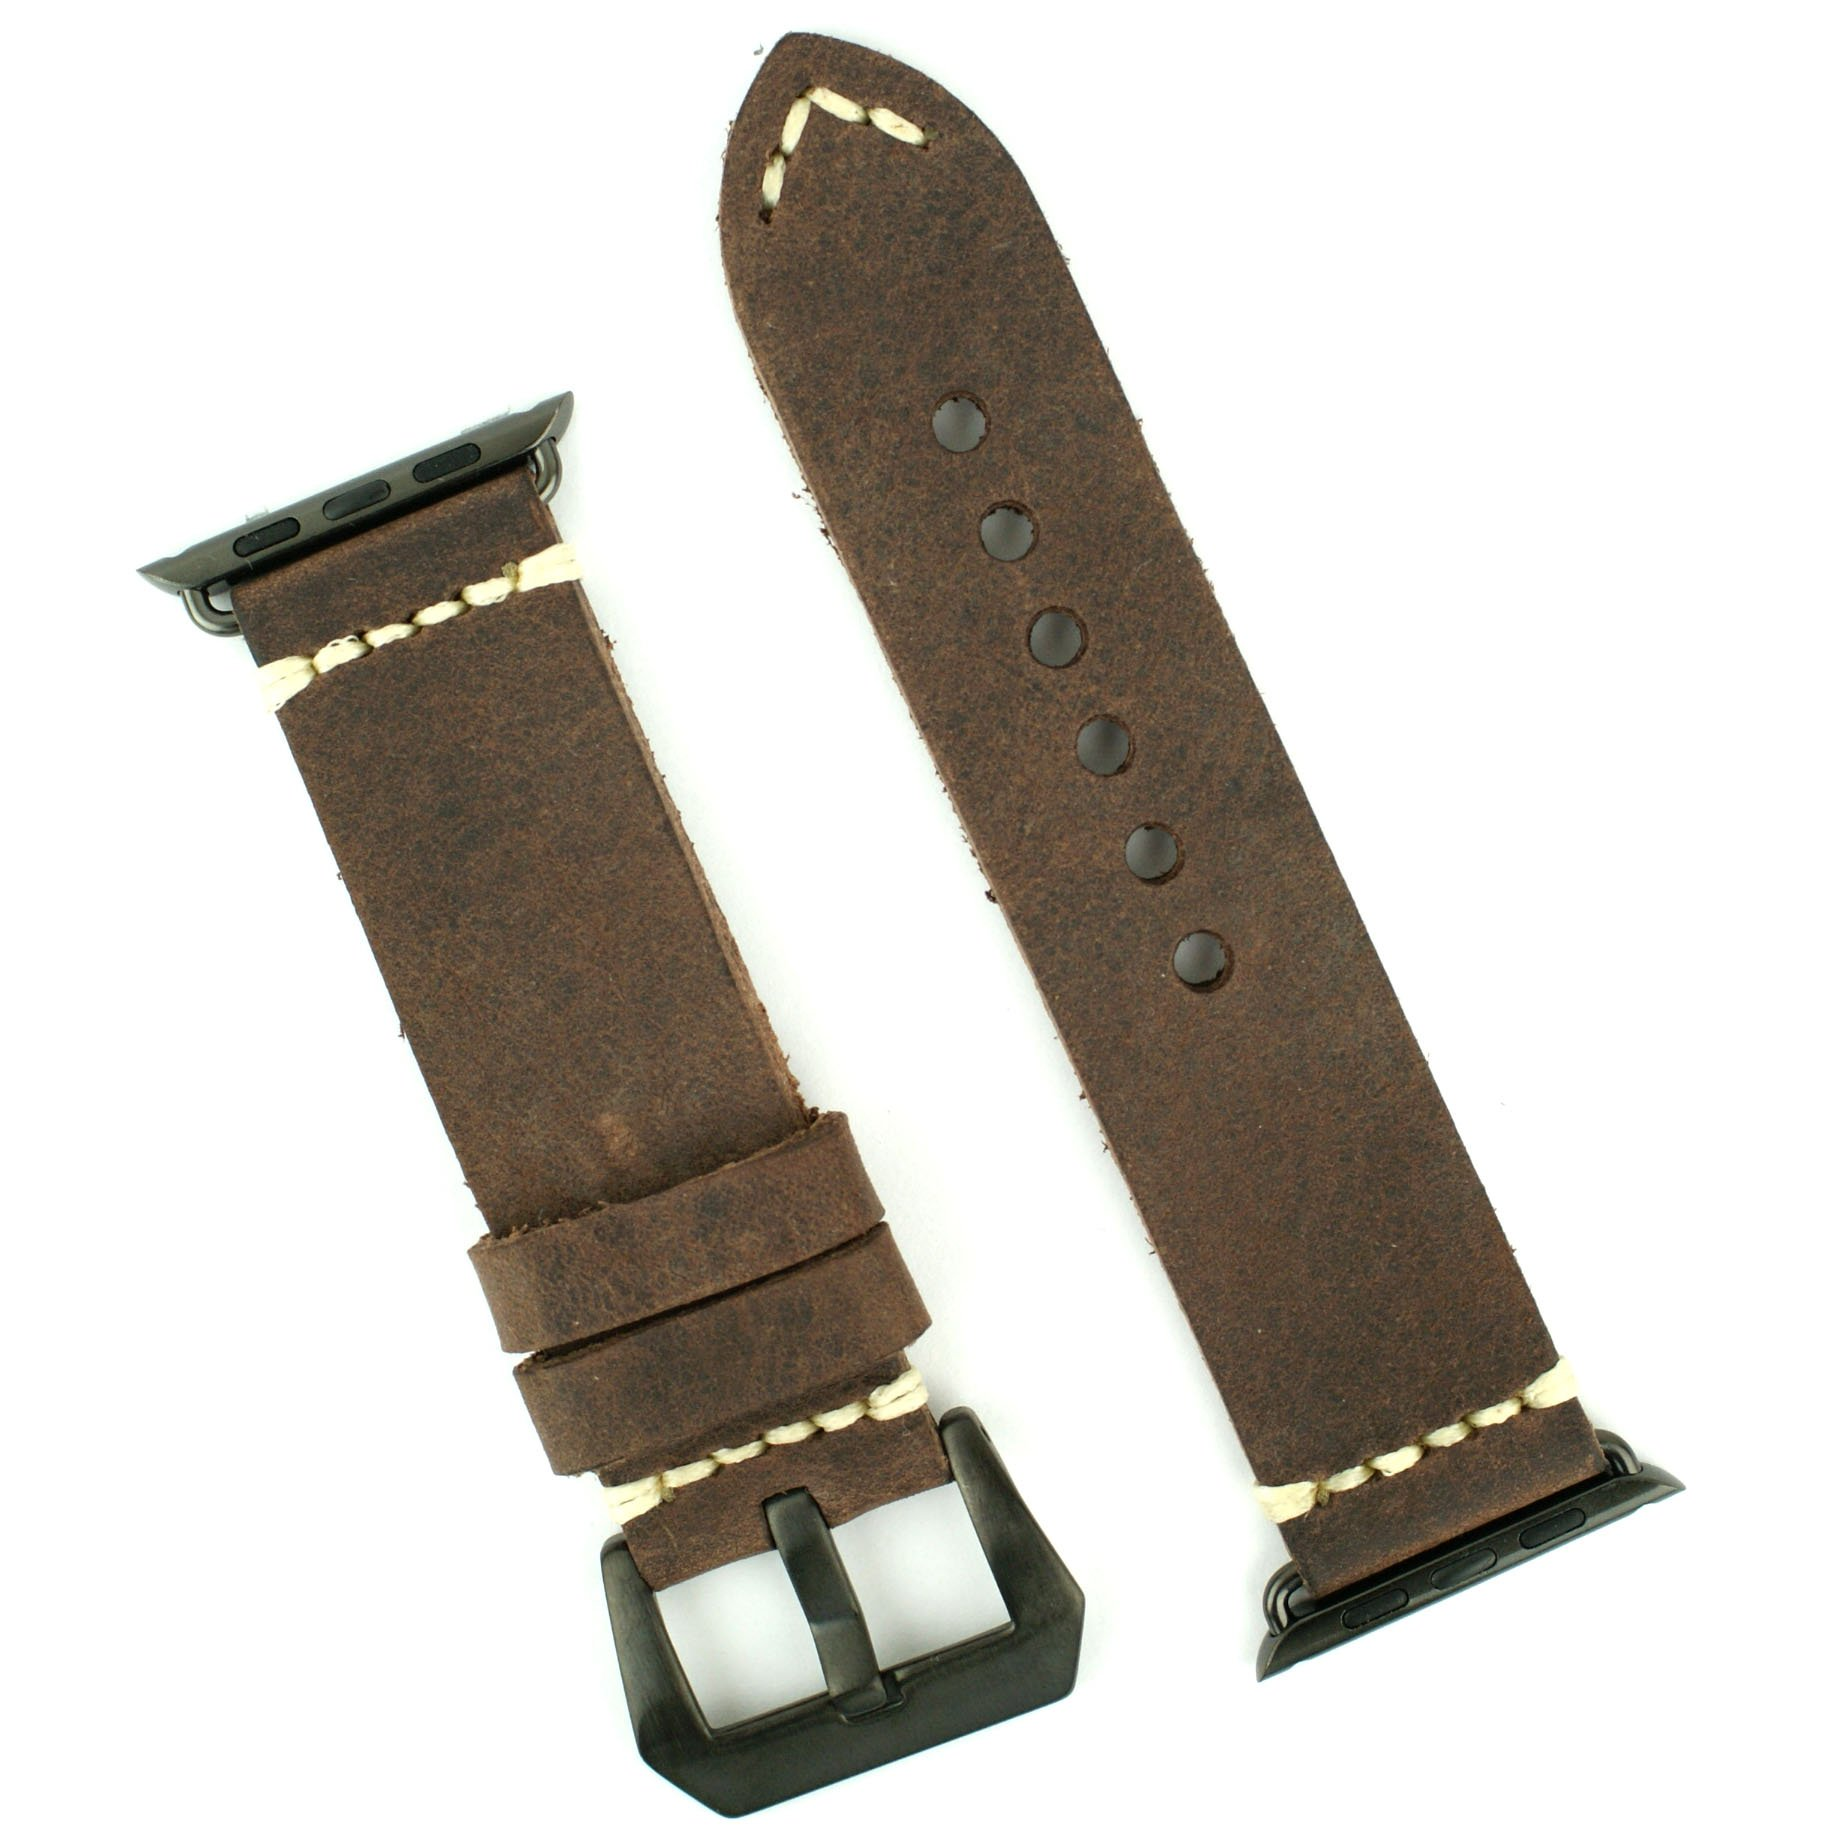 APPLE WATCH BAND Replacement band for 42mm APPLE WATCH BLACK STAINLESS STEEL Handsewn Italian Leather Vintage Strap (Dark Brown) by B and R Bands (Image #1)